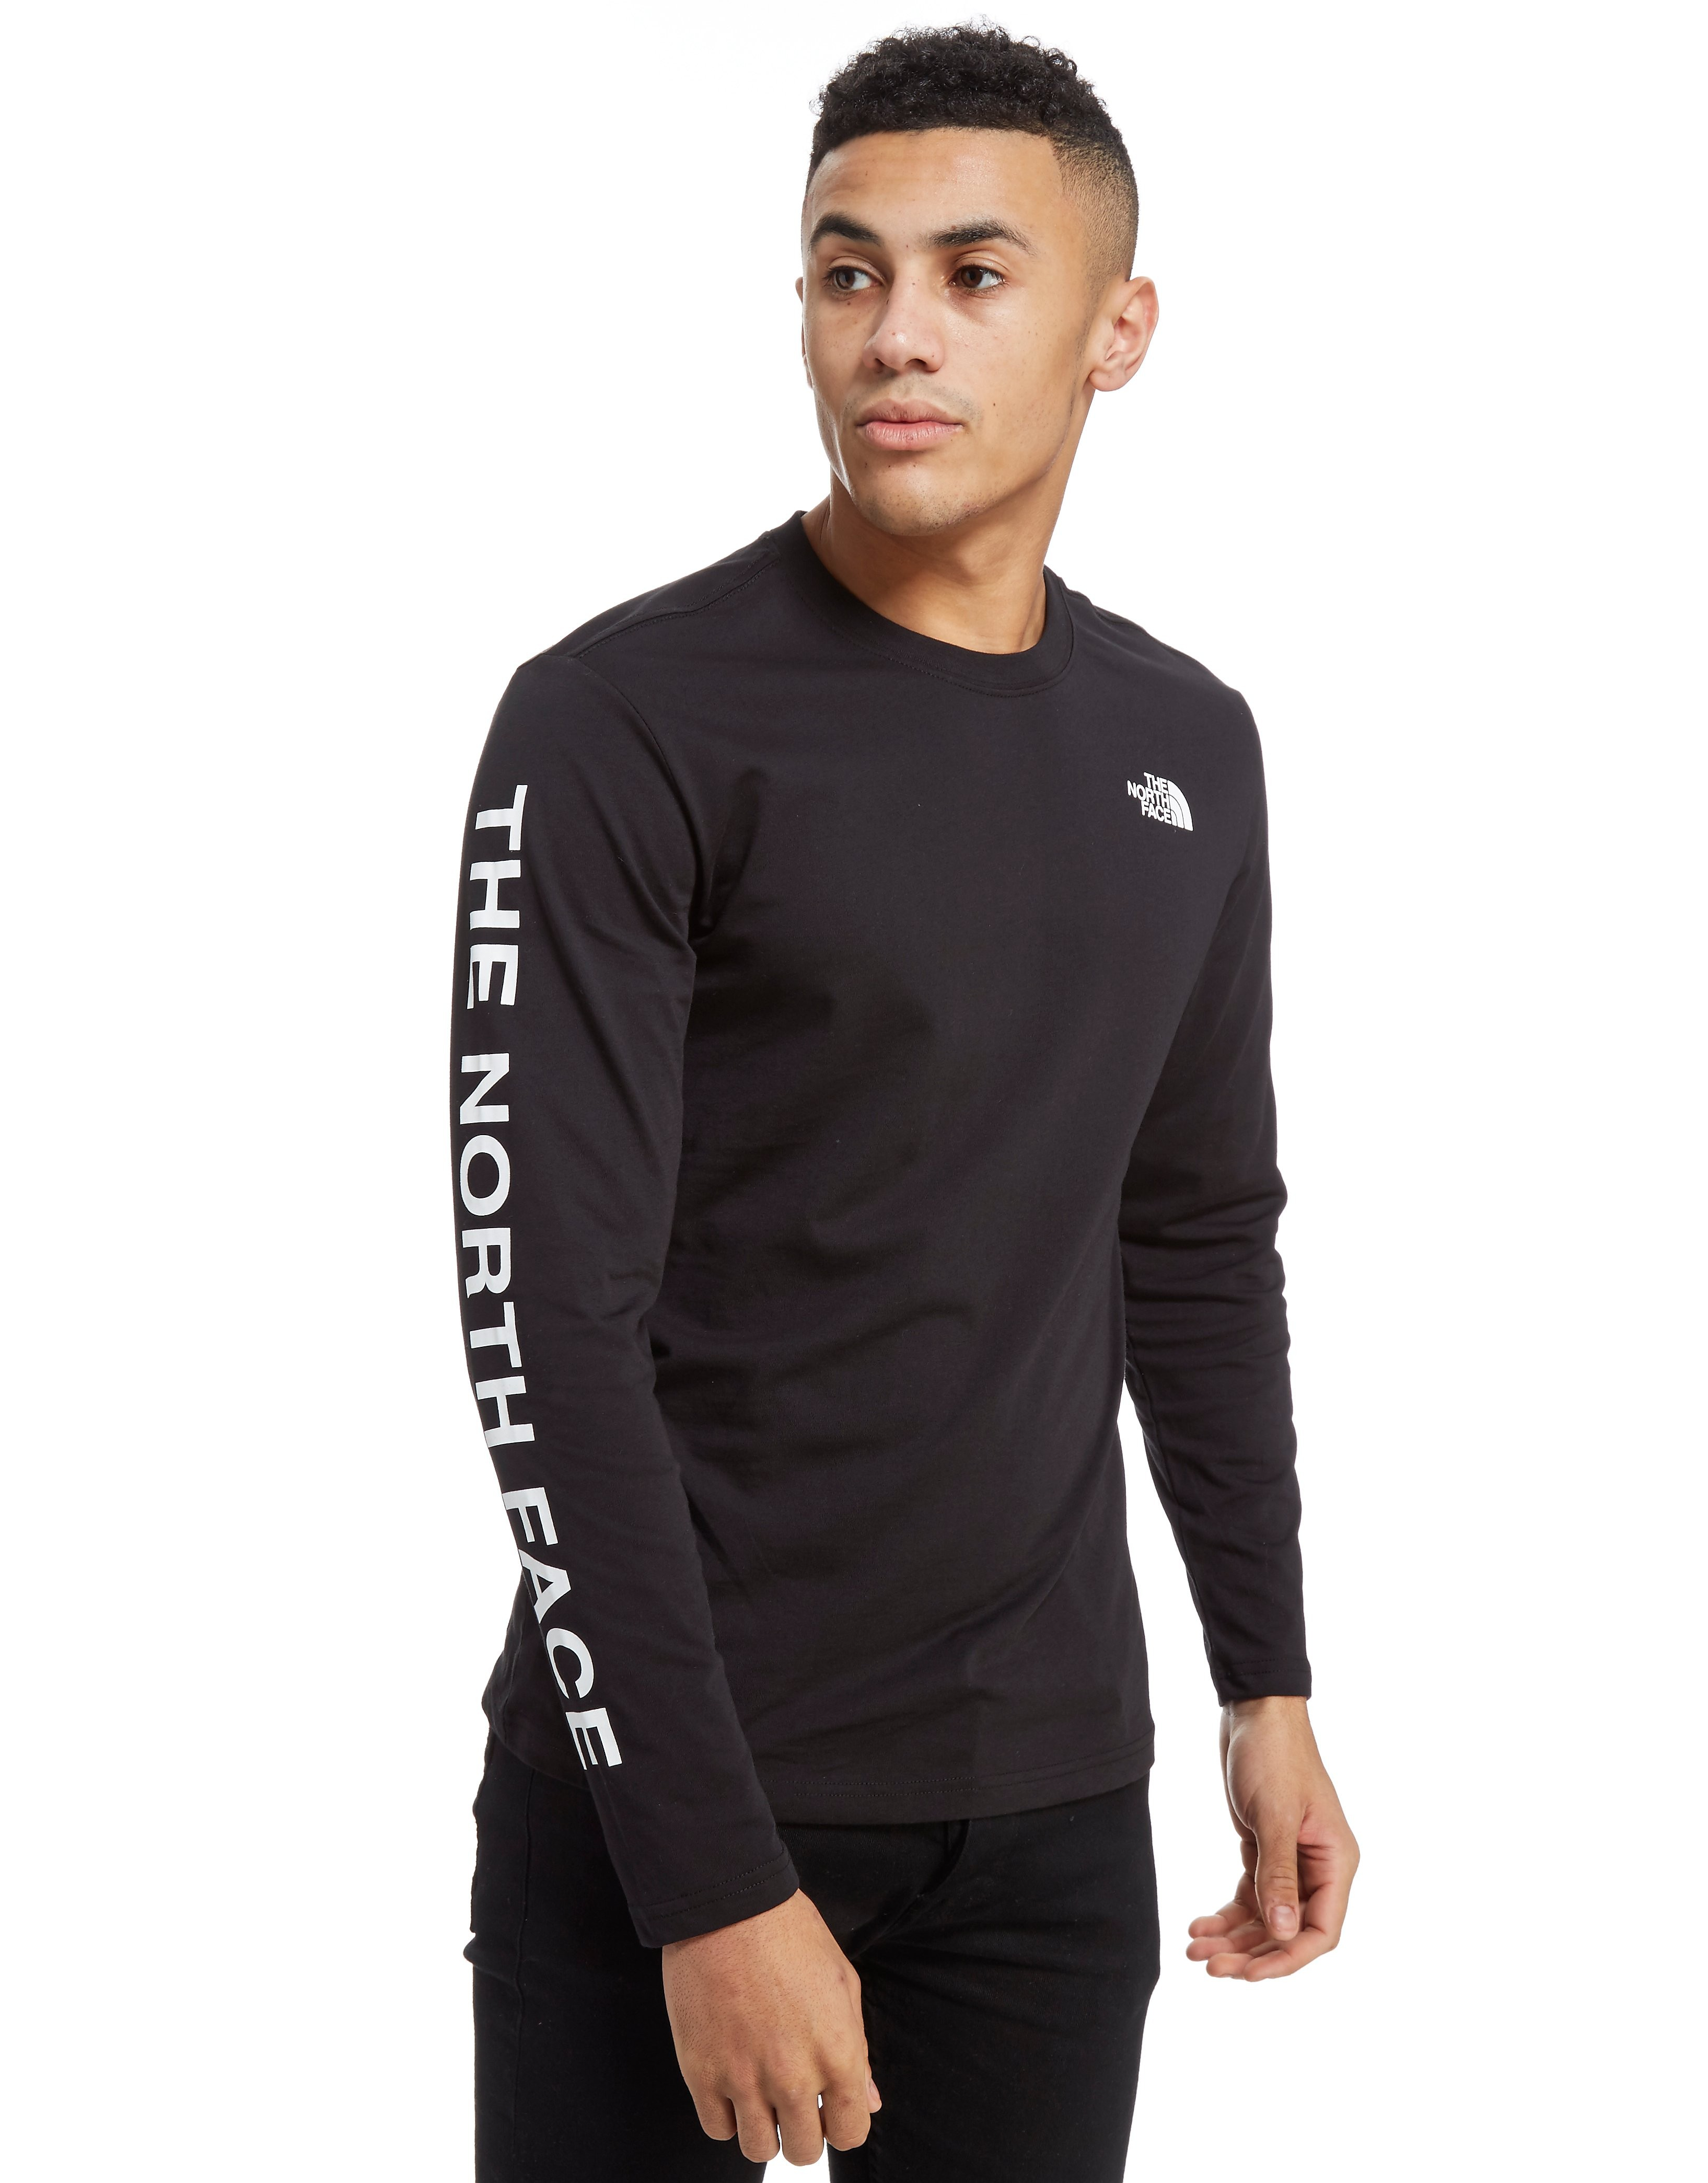 The North Face Sleeve Print Long Sleeved T-Shirt